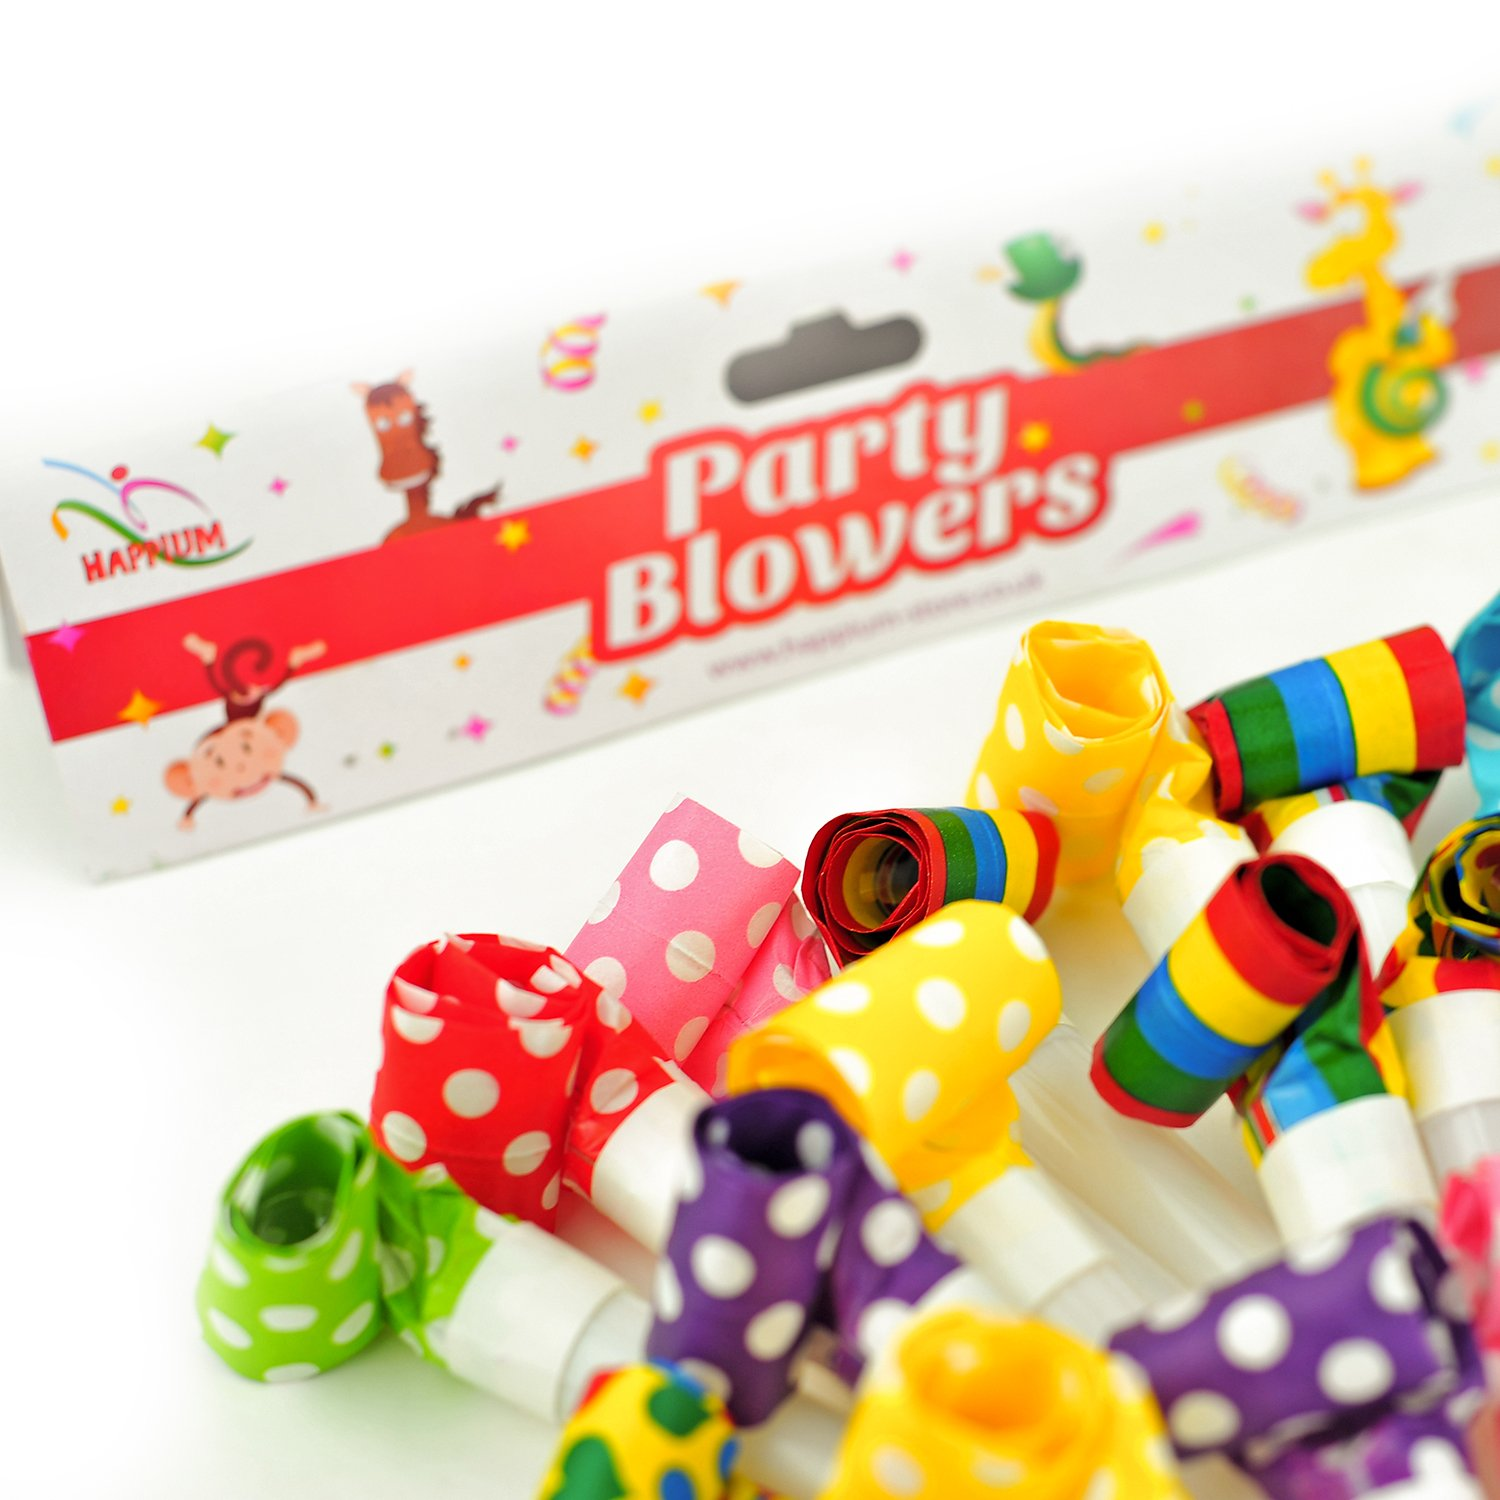 50 X Party Blowers Blowouts Birthday Loot Bag Filler Noise Toy Foil Colours Happium